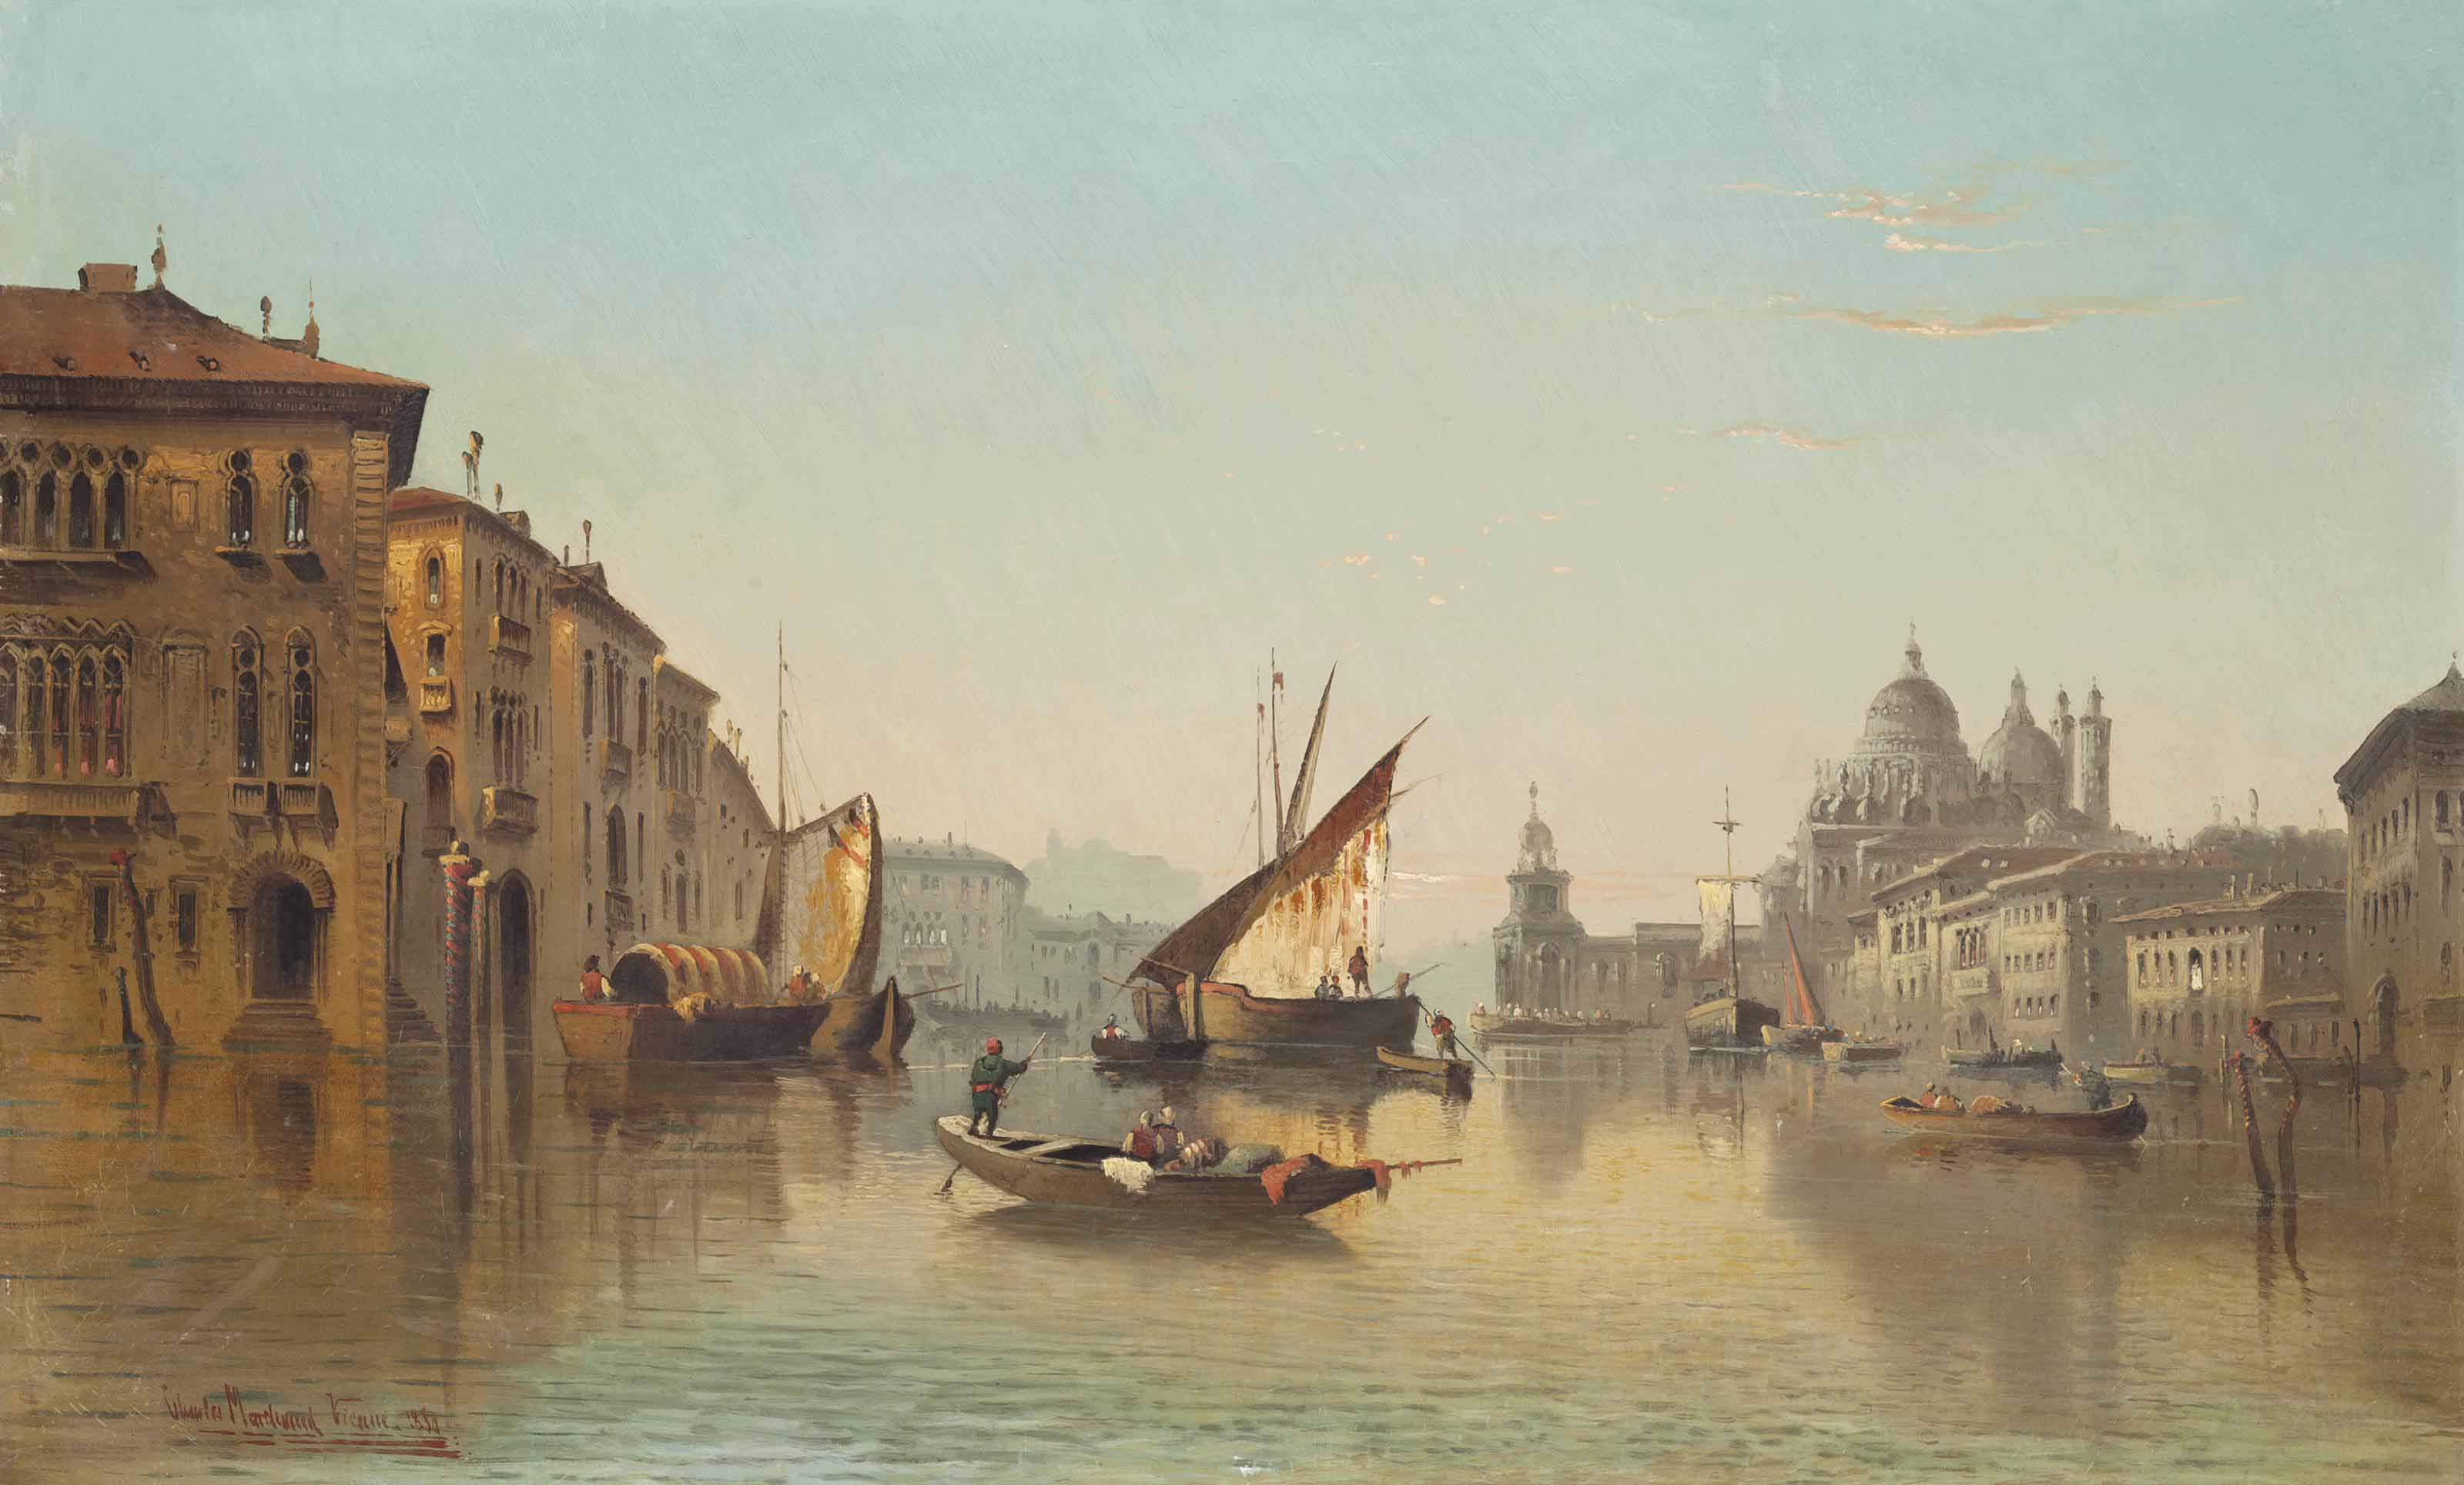 Vessels on the Grand Canal, Venice